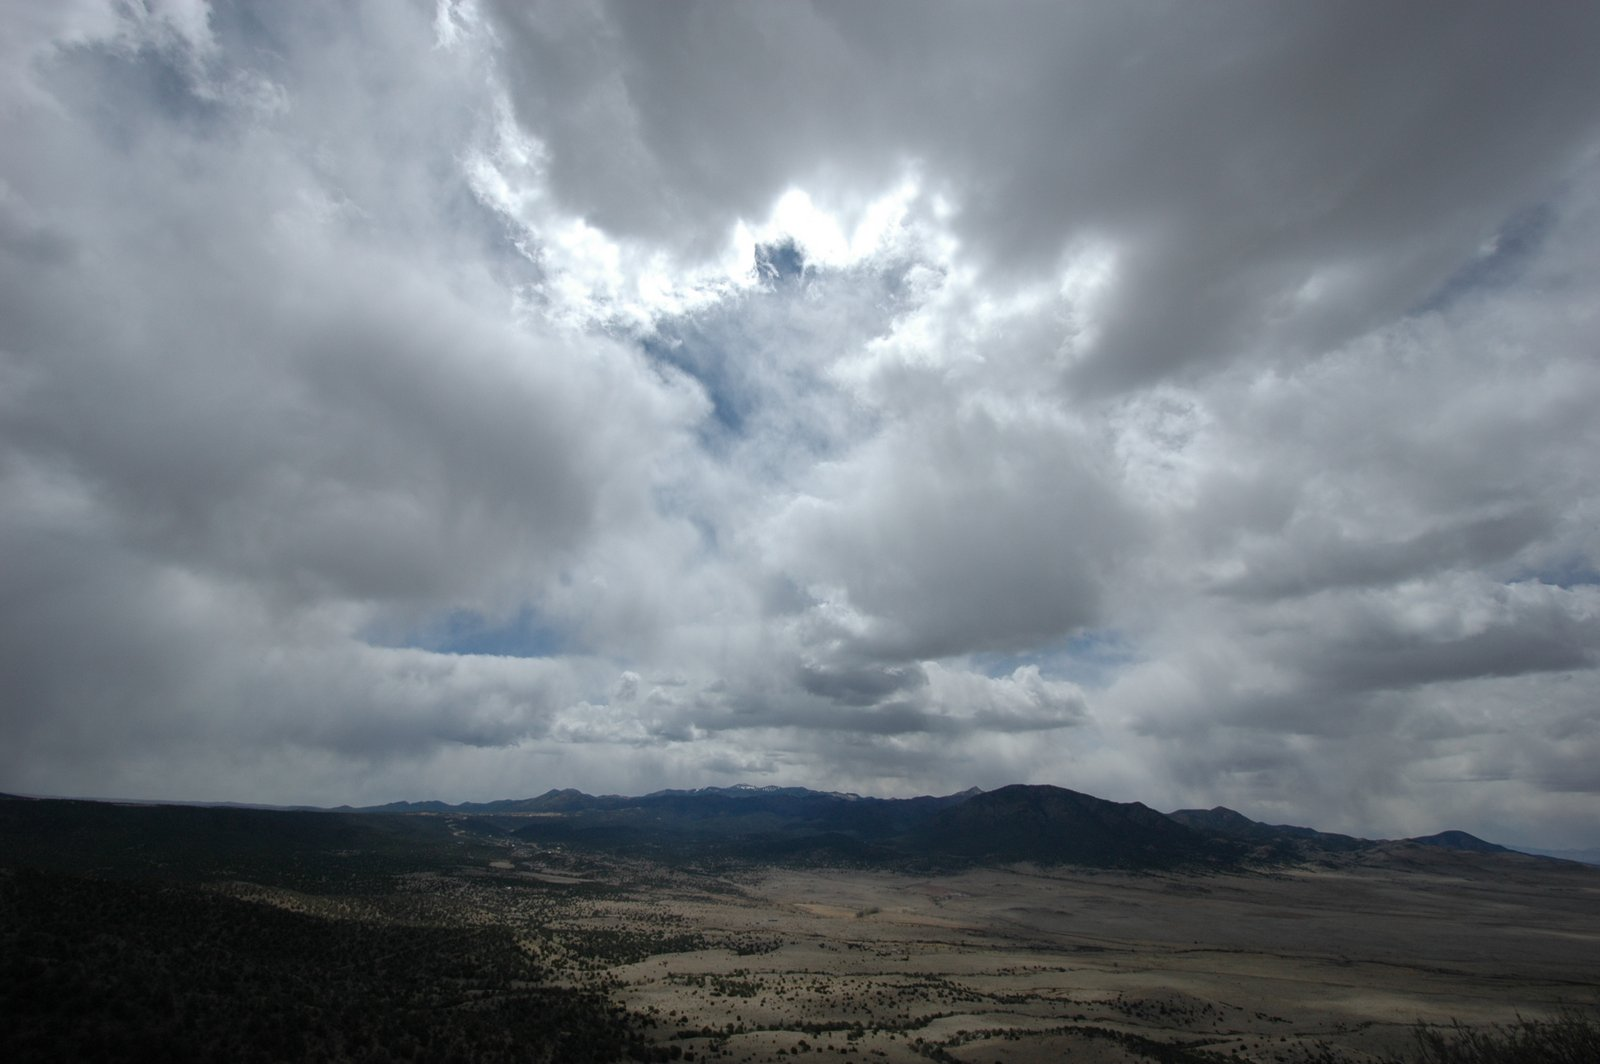 Clouds over Sierra Blanca